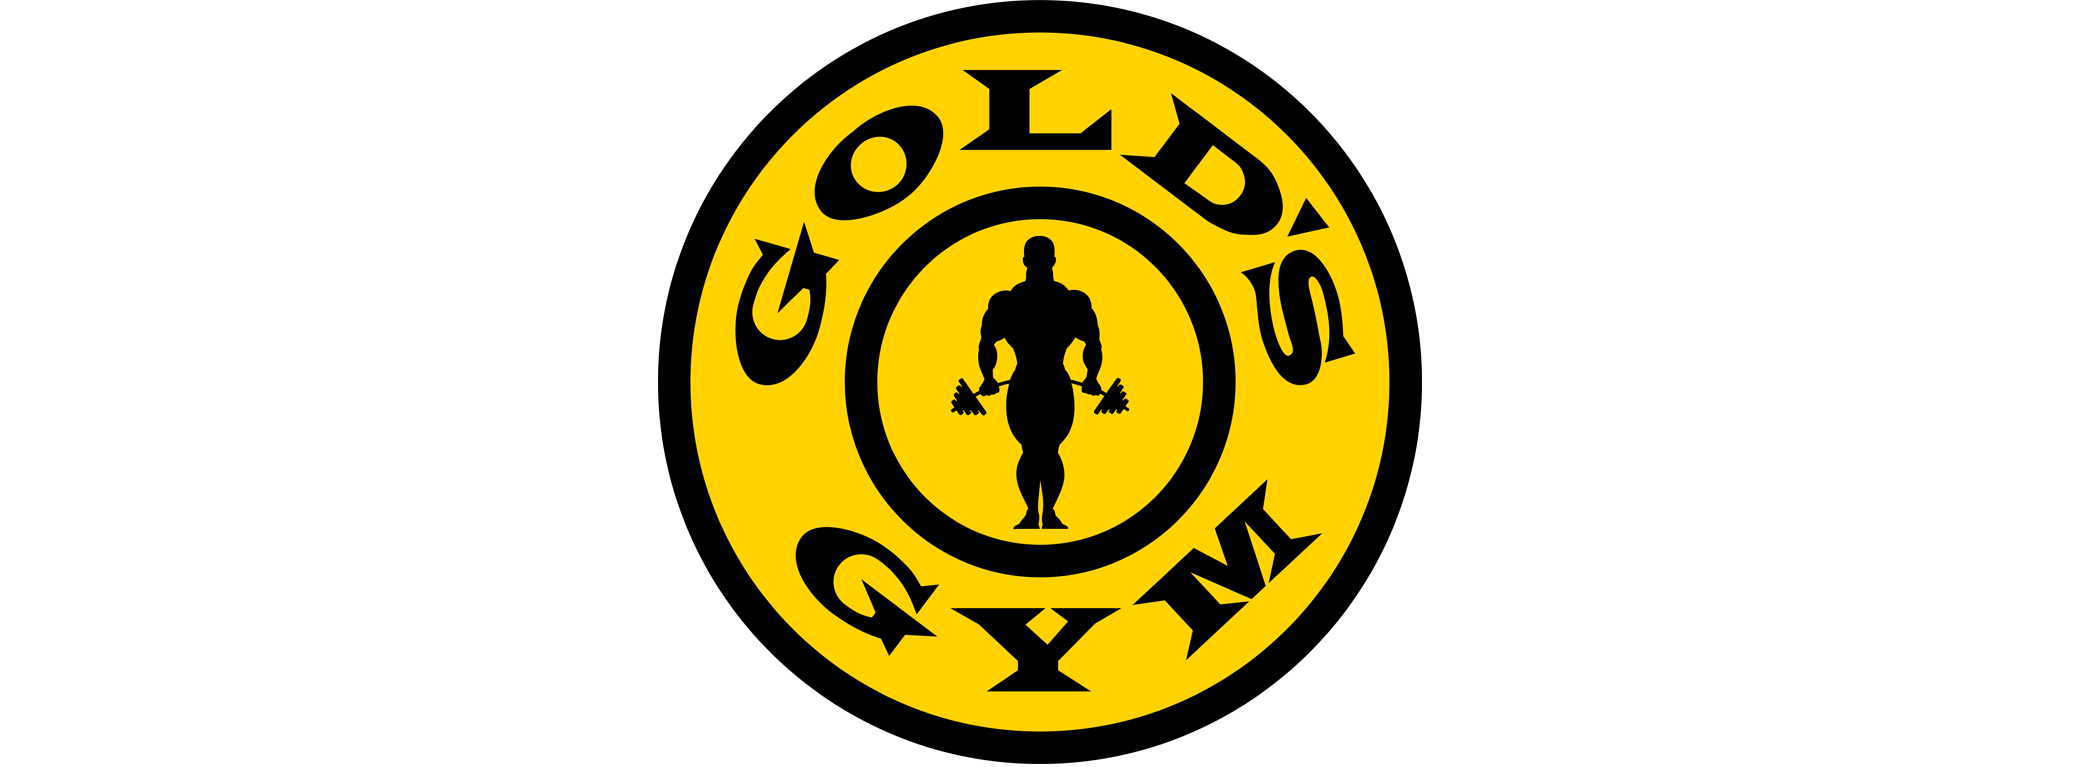 1, Golds Gym jobs available on settlements-cause.ml Apply to Front Desk Agent, Membership Sales, Housekeeper and more!